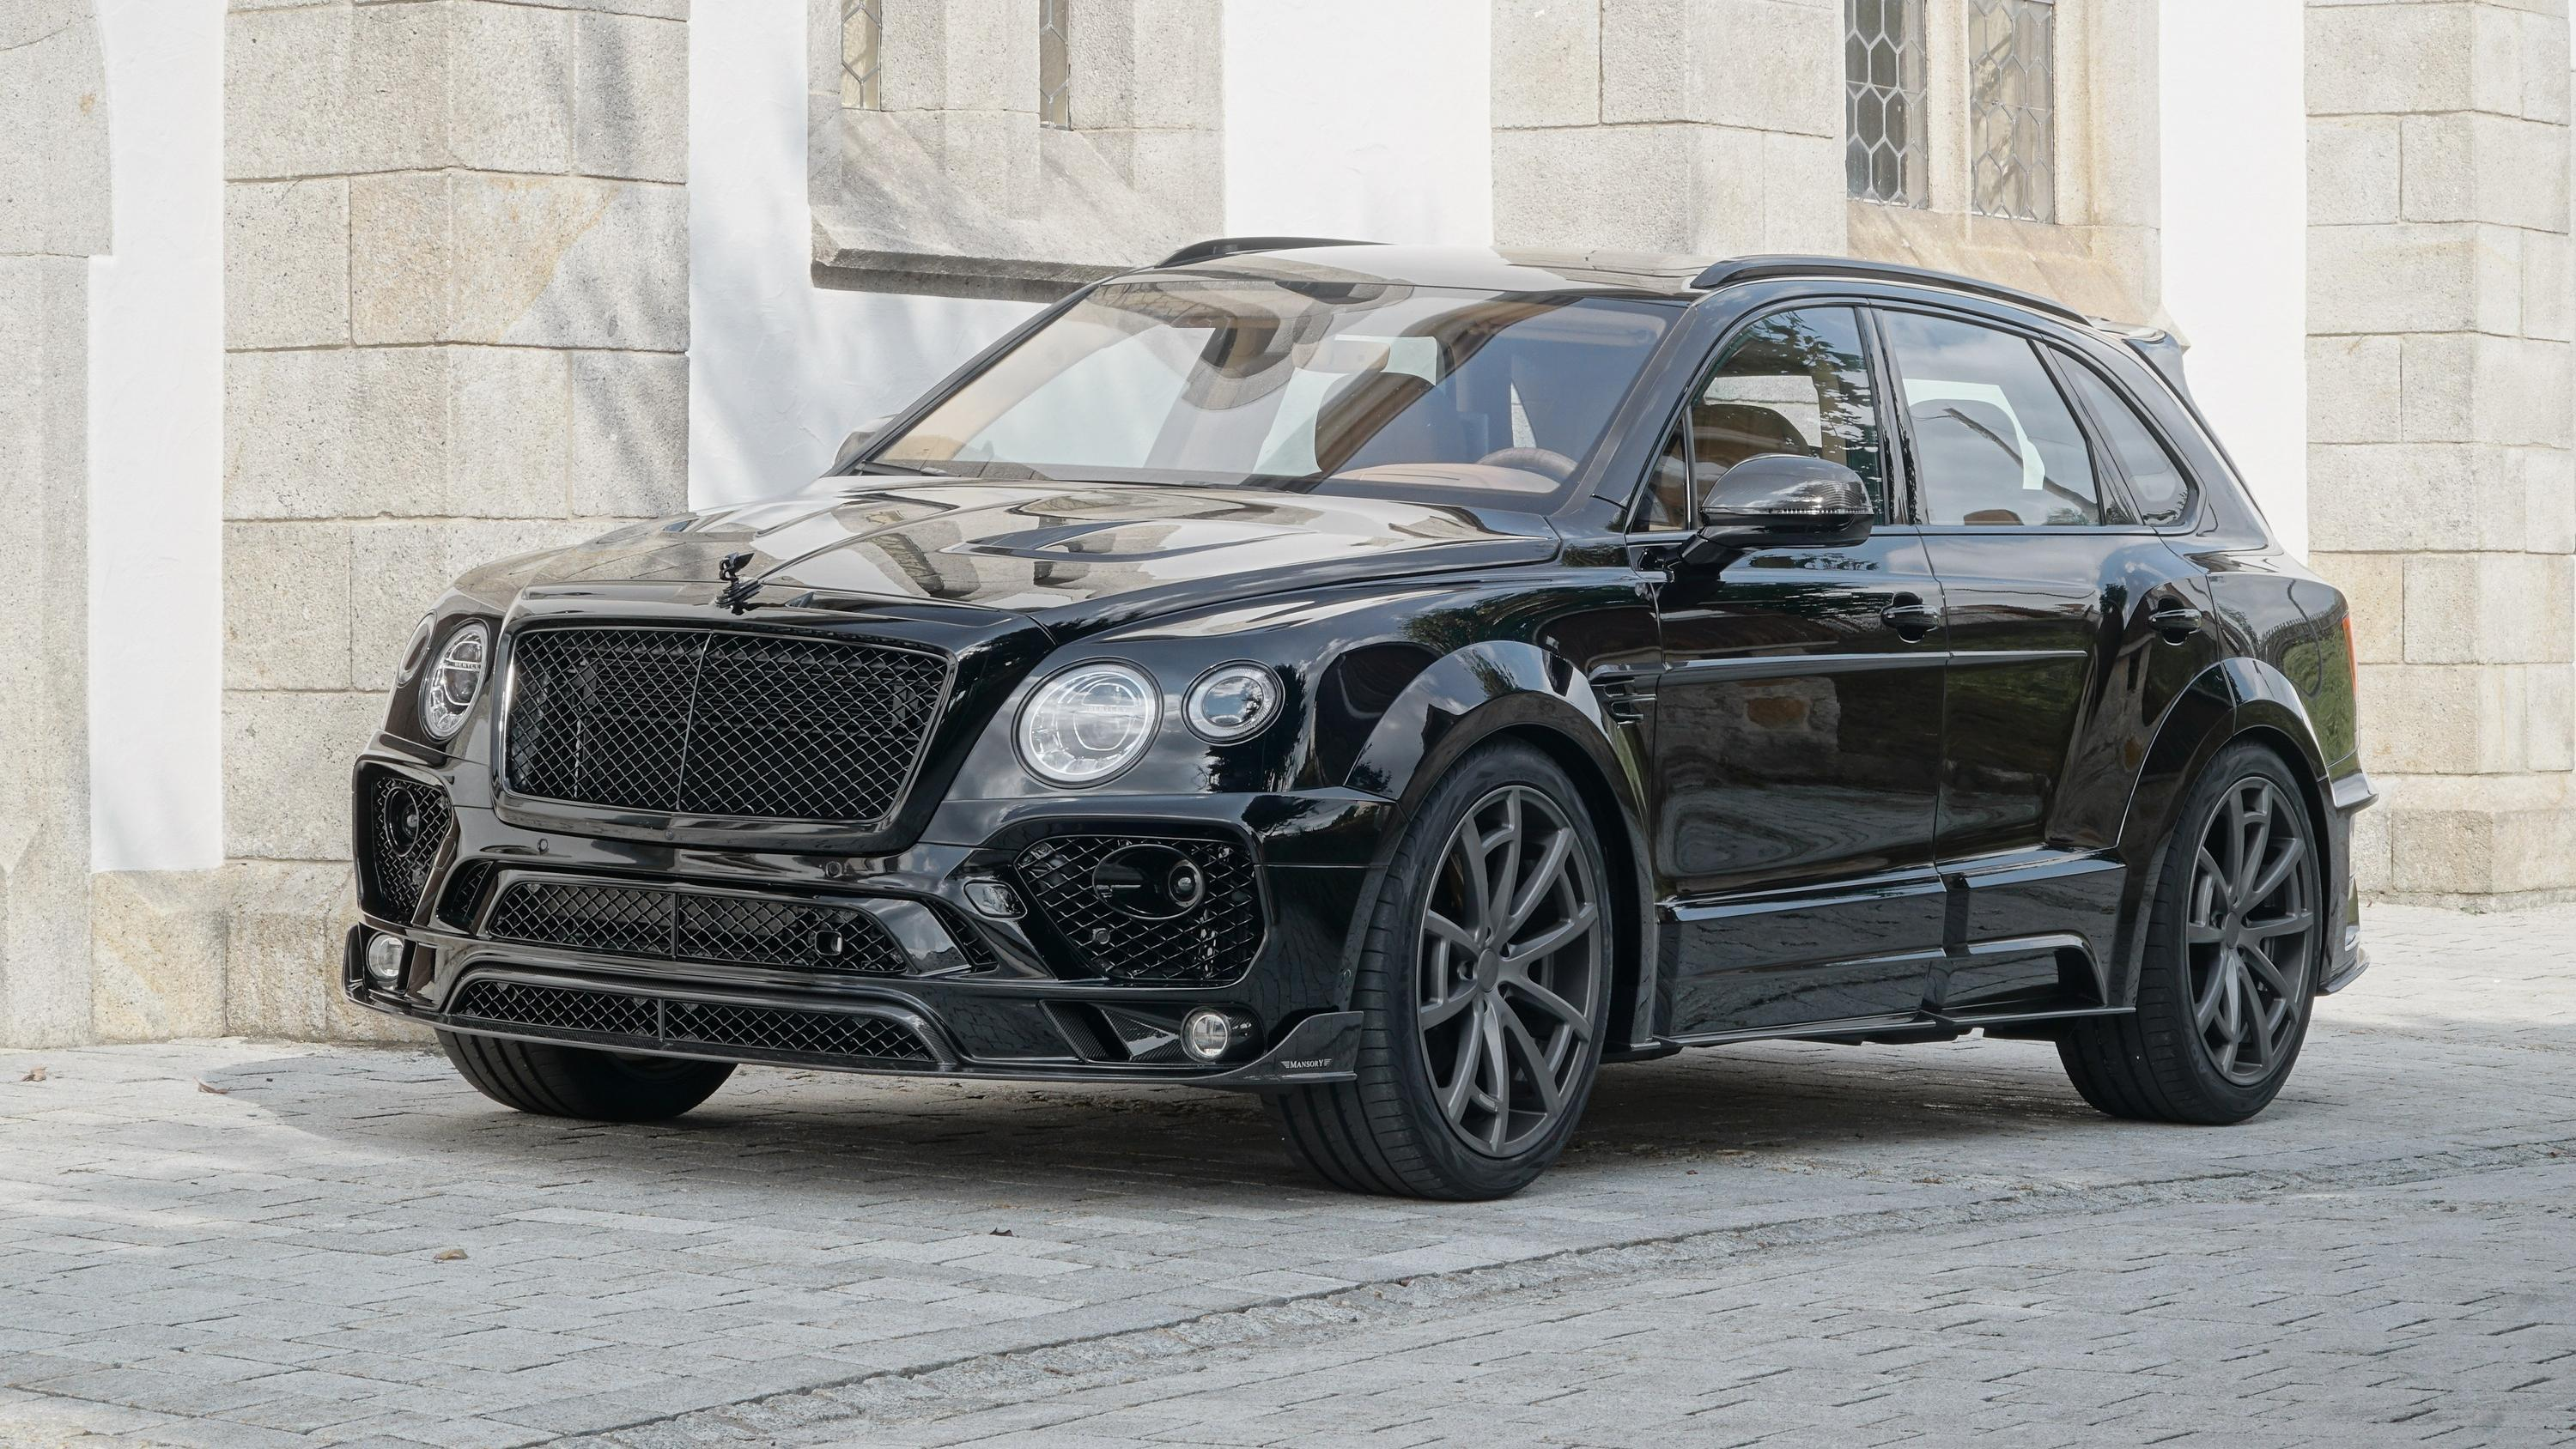 2017 Bentley Bentayga By Mansory Pictures, Photos, Wallpapers. | Top ...